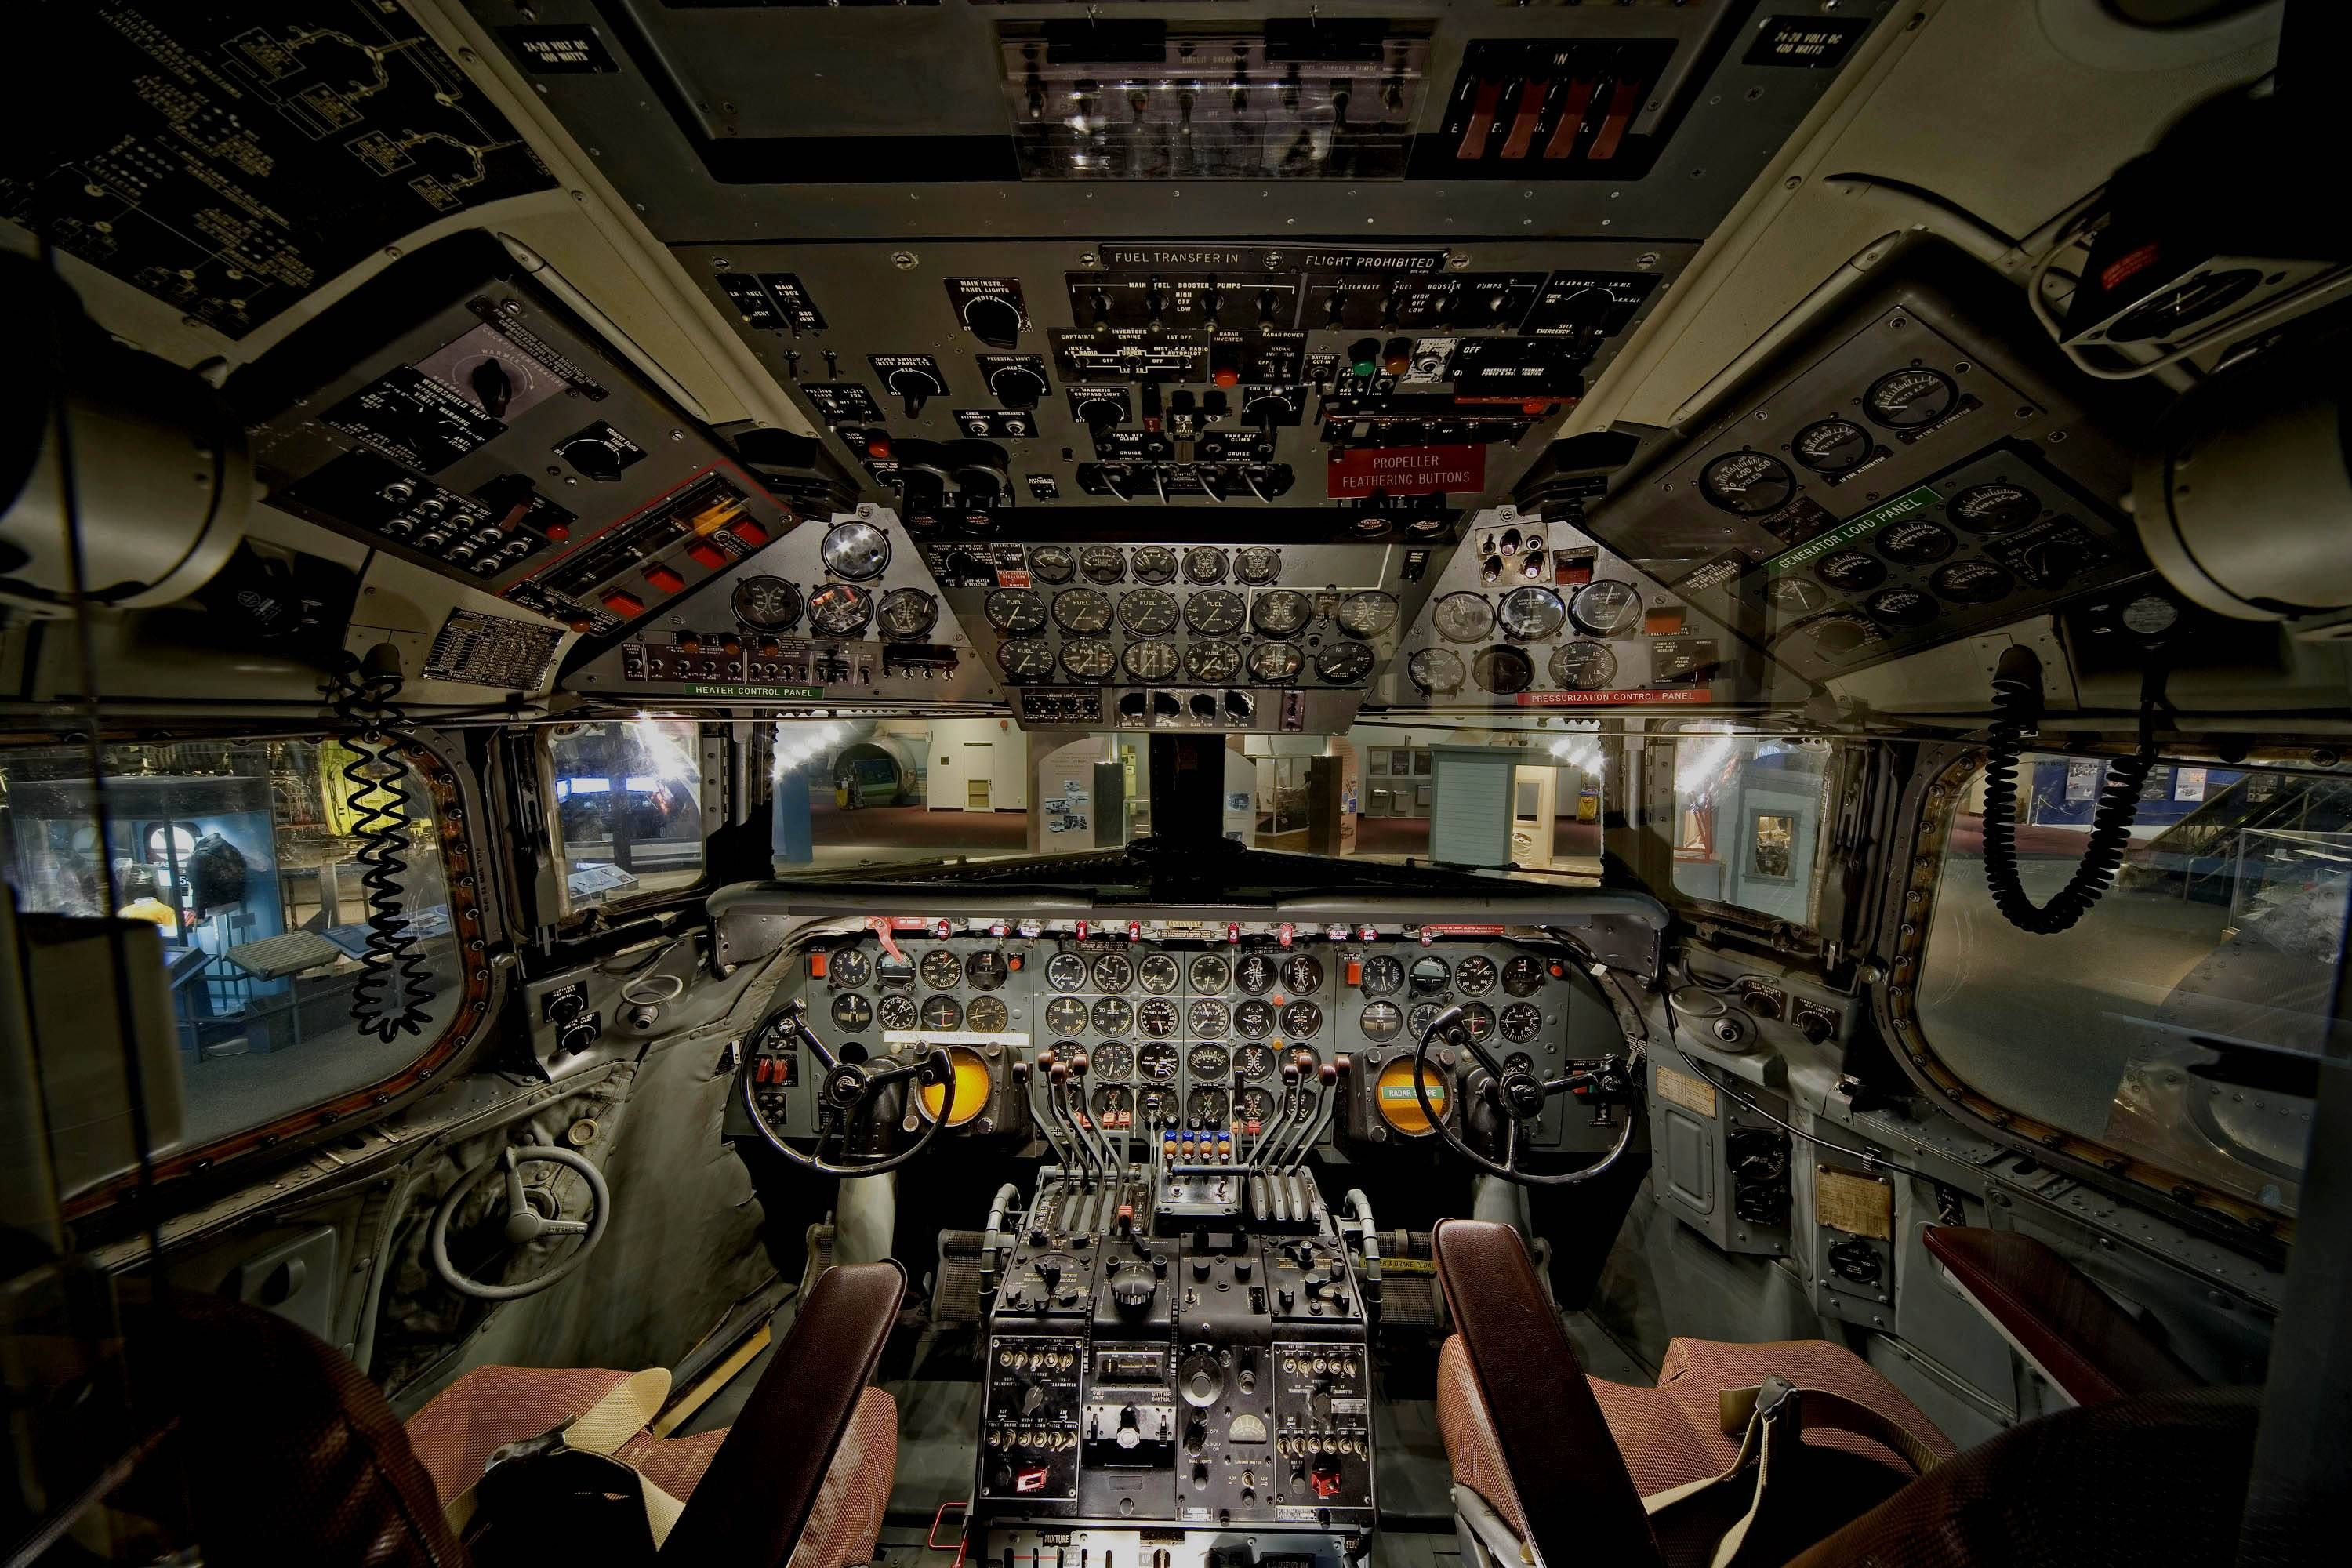 Wallpapers Cockpit Wallpaper Cave Epic Car Wallpapers - Airline captain takes amazing photos from his cockpit and no theyre not photoshopped